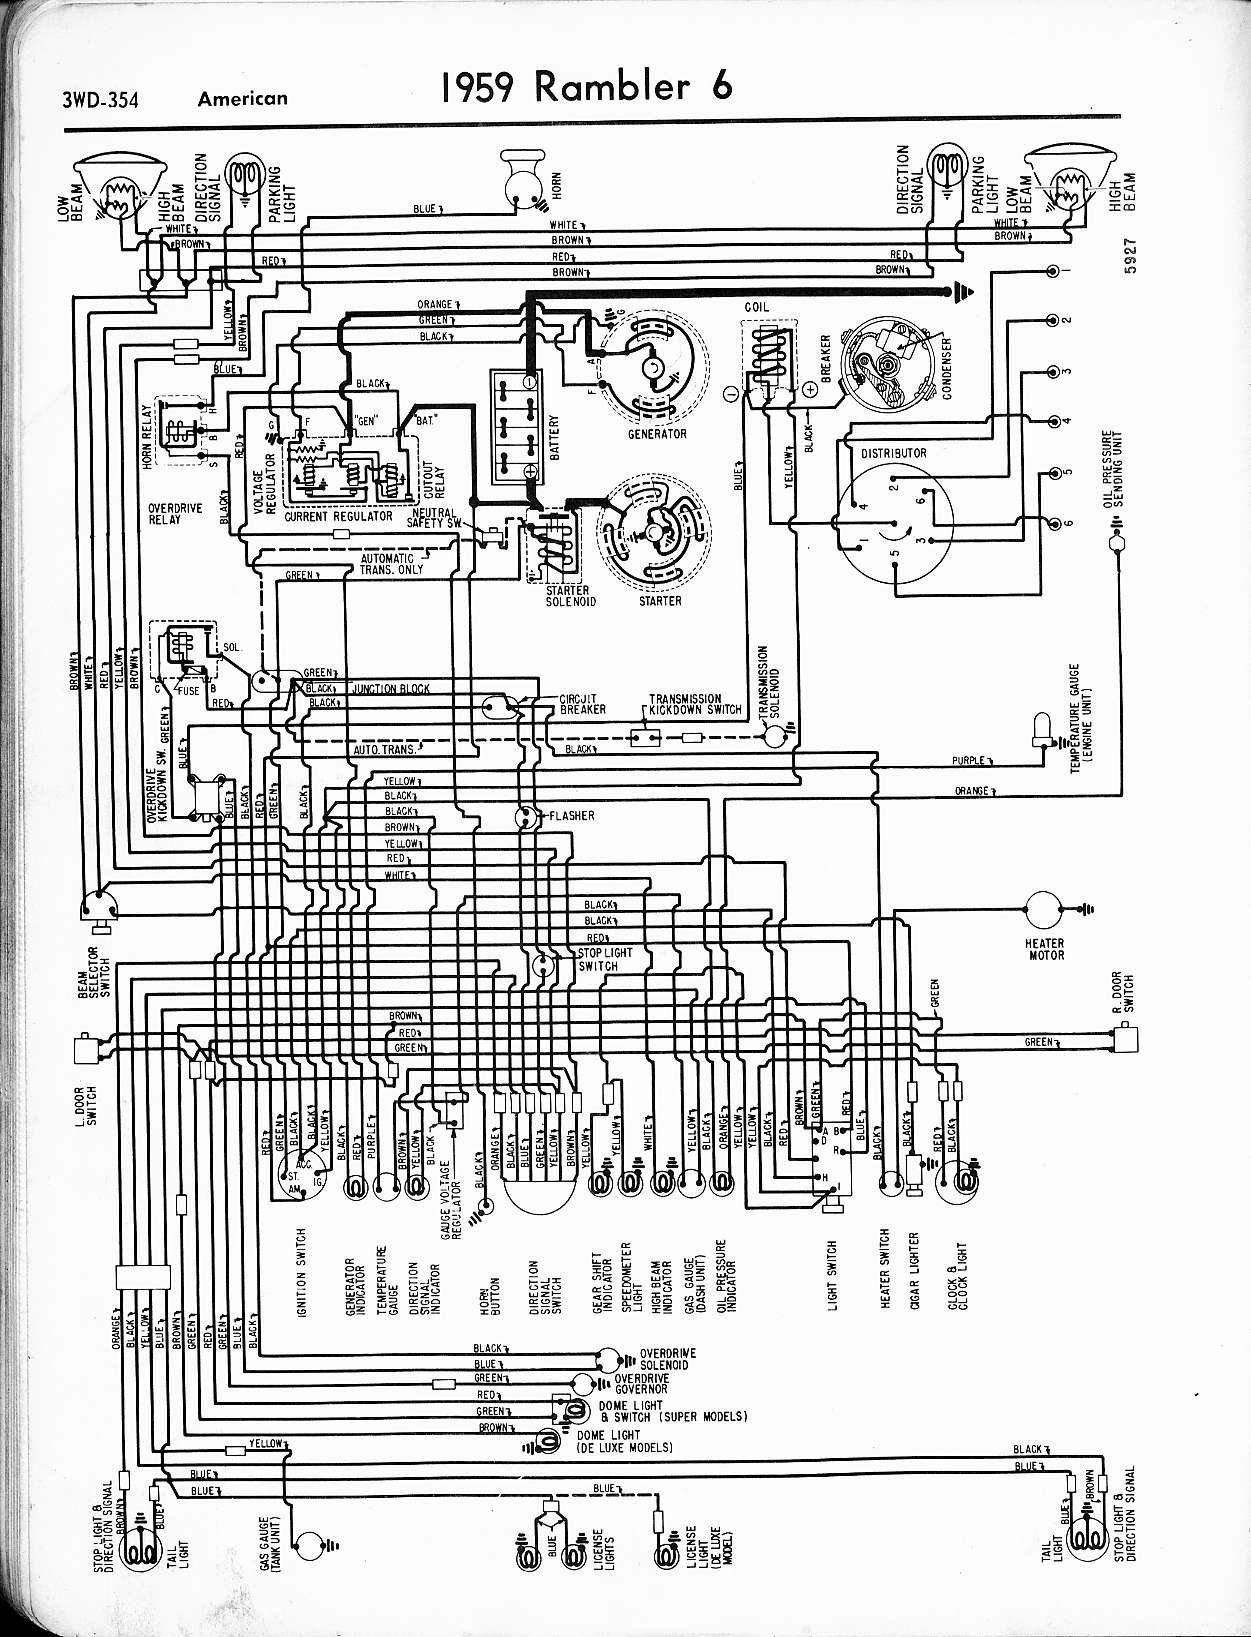 rambler wiring diagrams the old car manual project rh oldcarmanualproject com american wiring diagram symbols american ironhorse speedometer wiring diagram